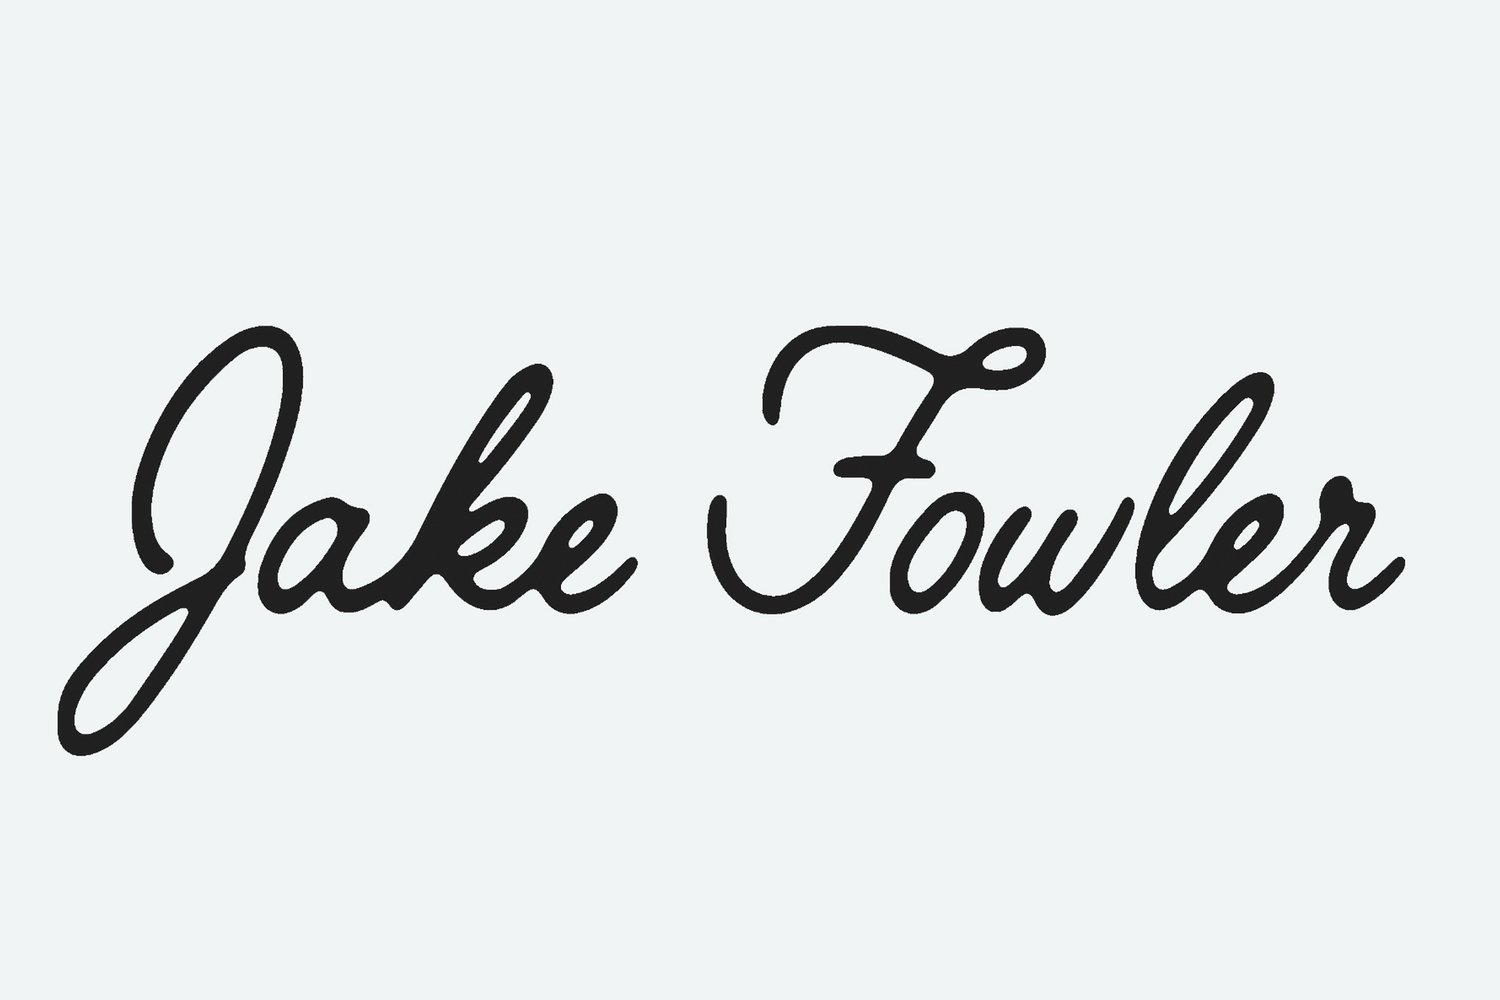 Jake Fowler Design